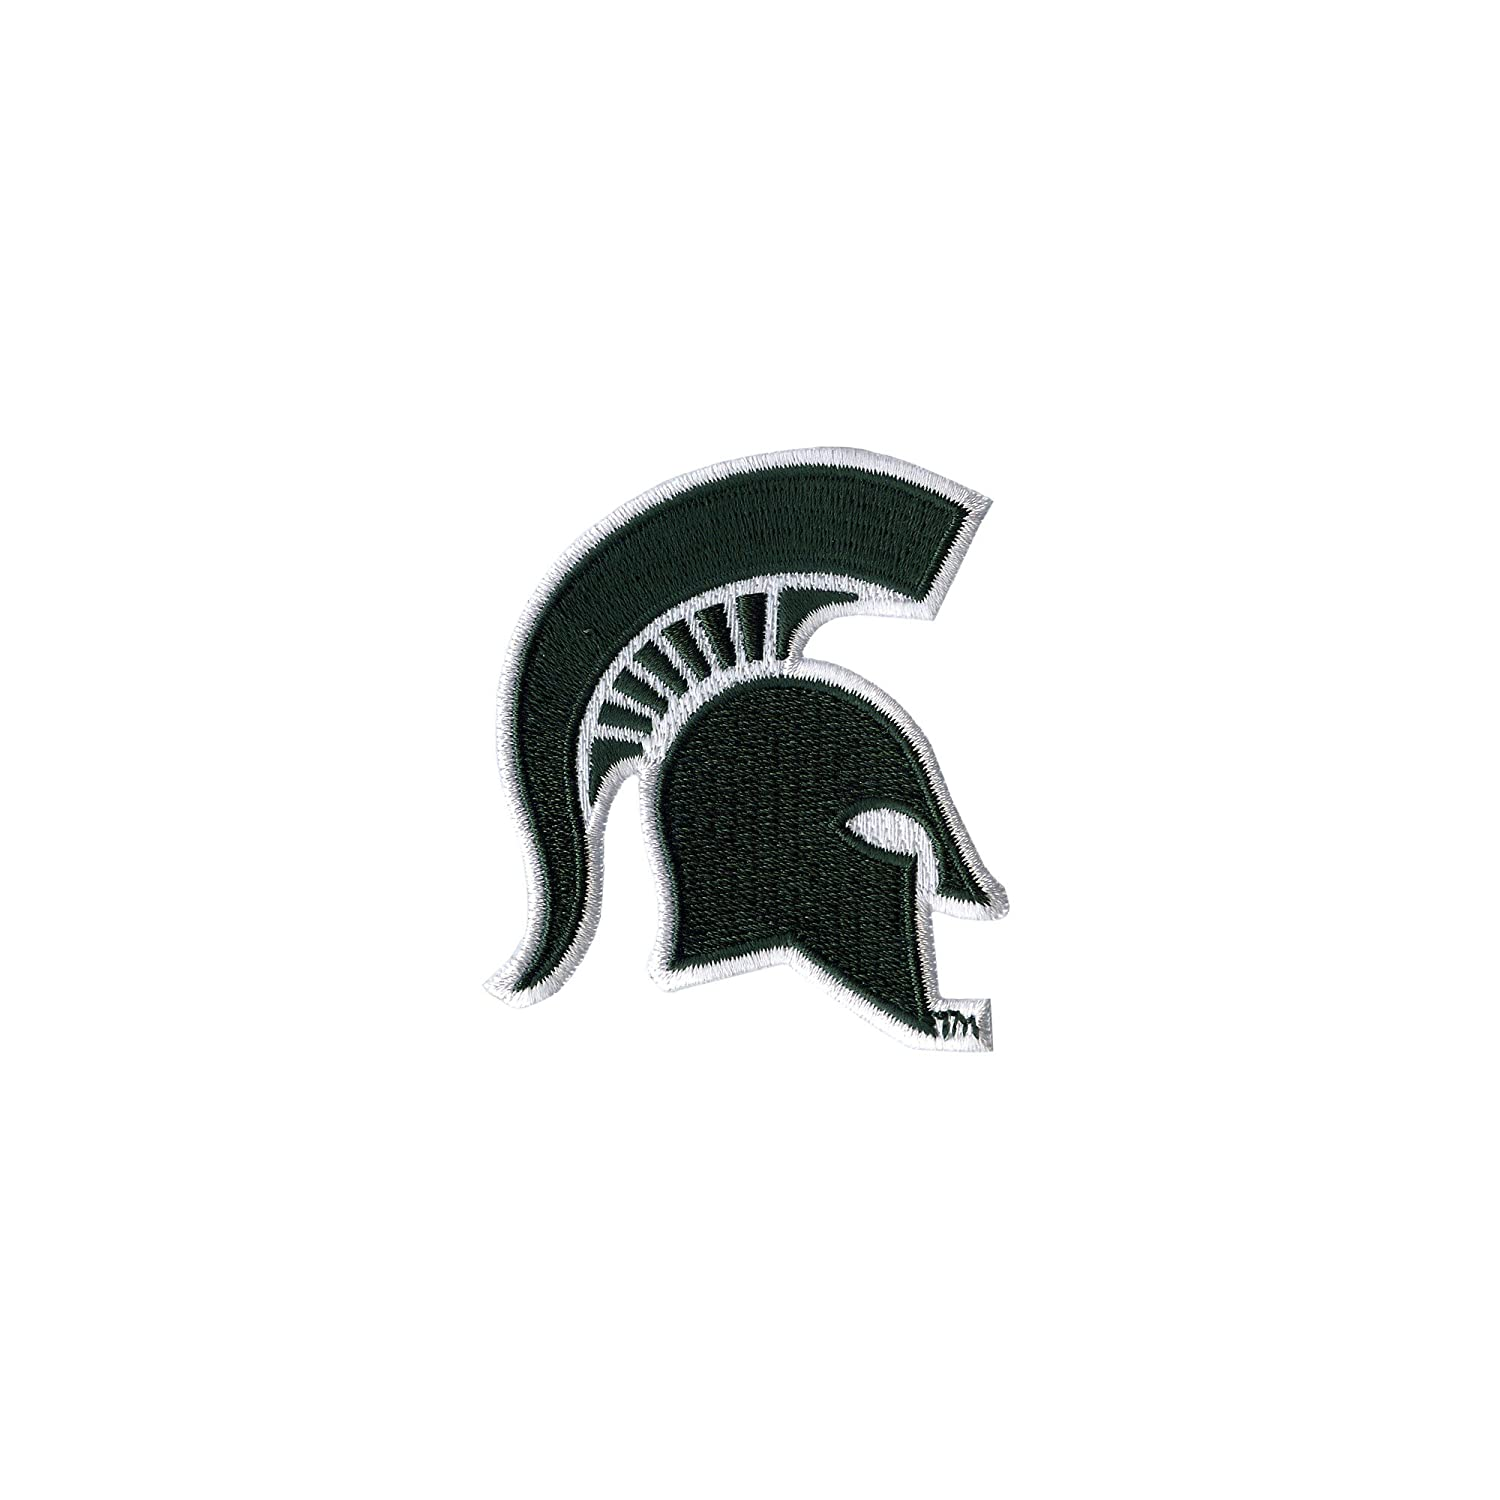 Tervis 1232317 Michigan State Spartans Helmet Insulated Tumbler with Emblem and Hunter Green with Gray Lid 24oz Water Bottle Clear